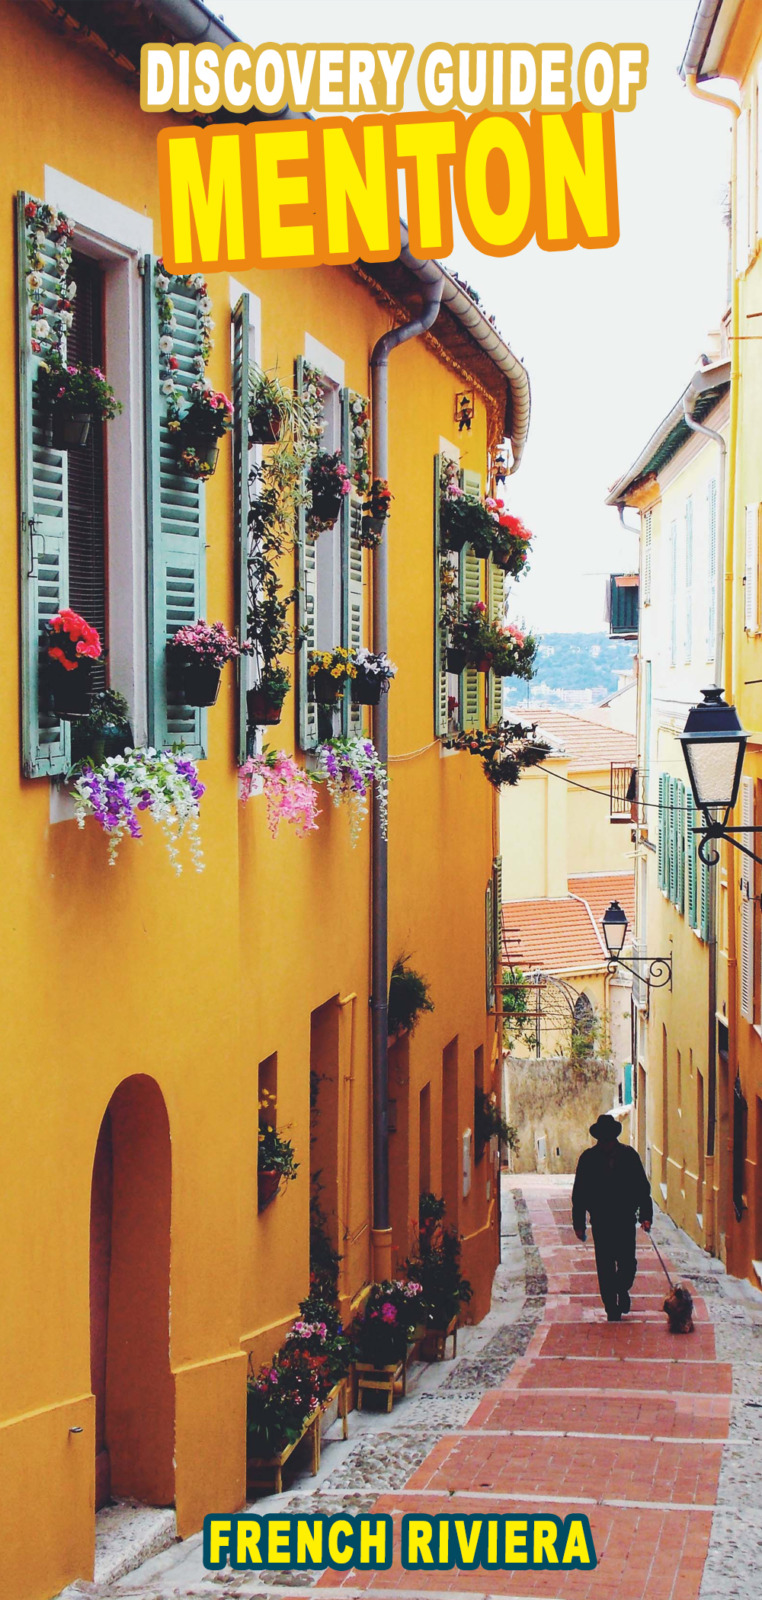 Menton, French Riviera for Pinterest by French Moments